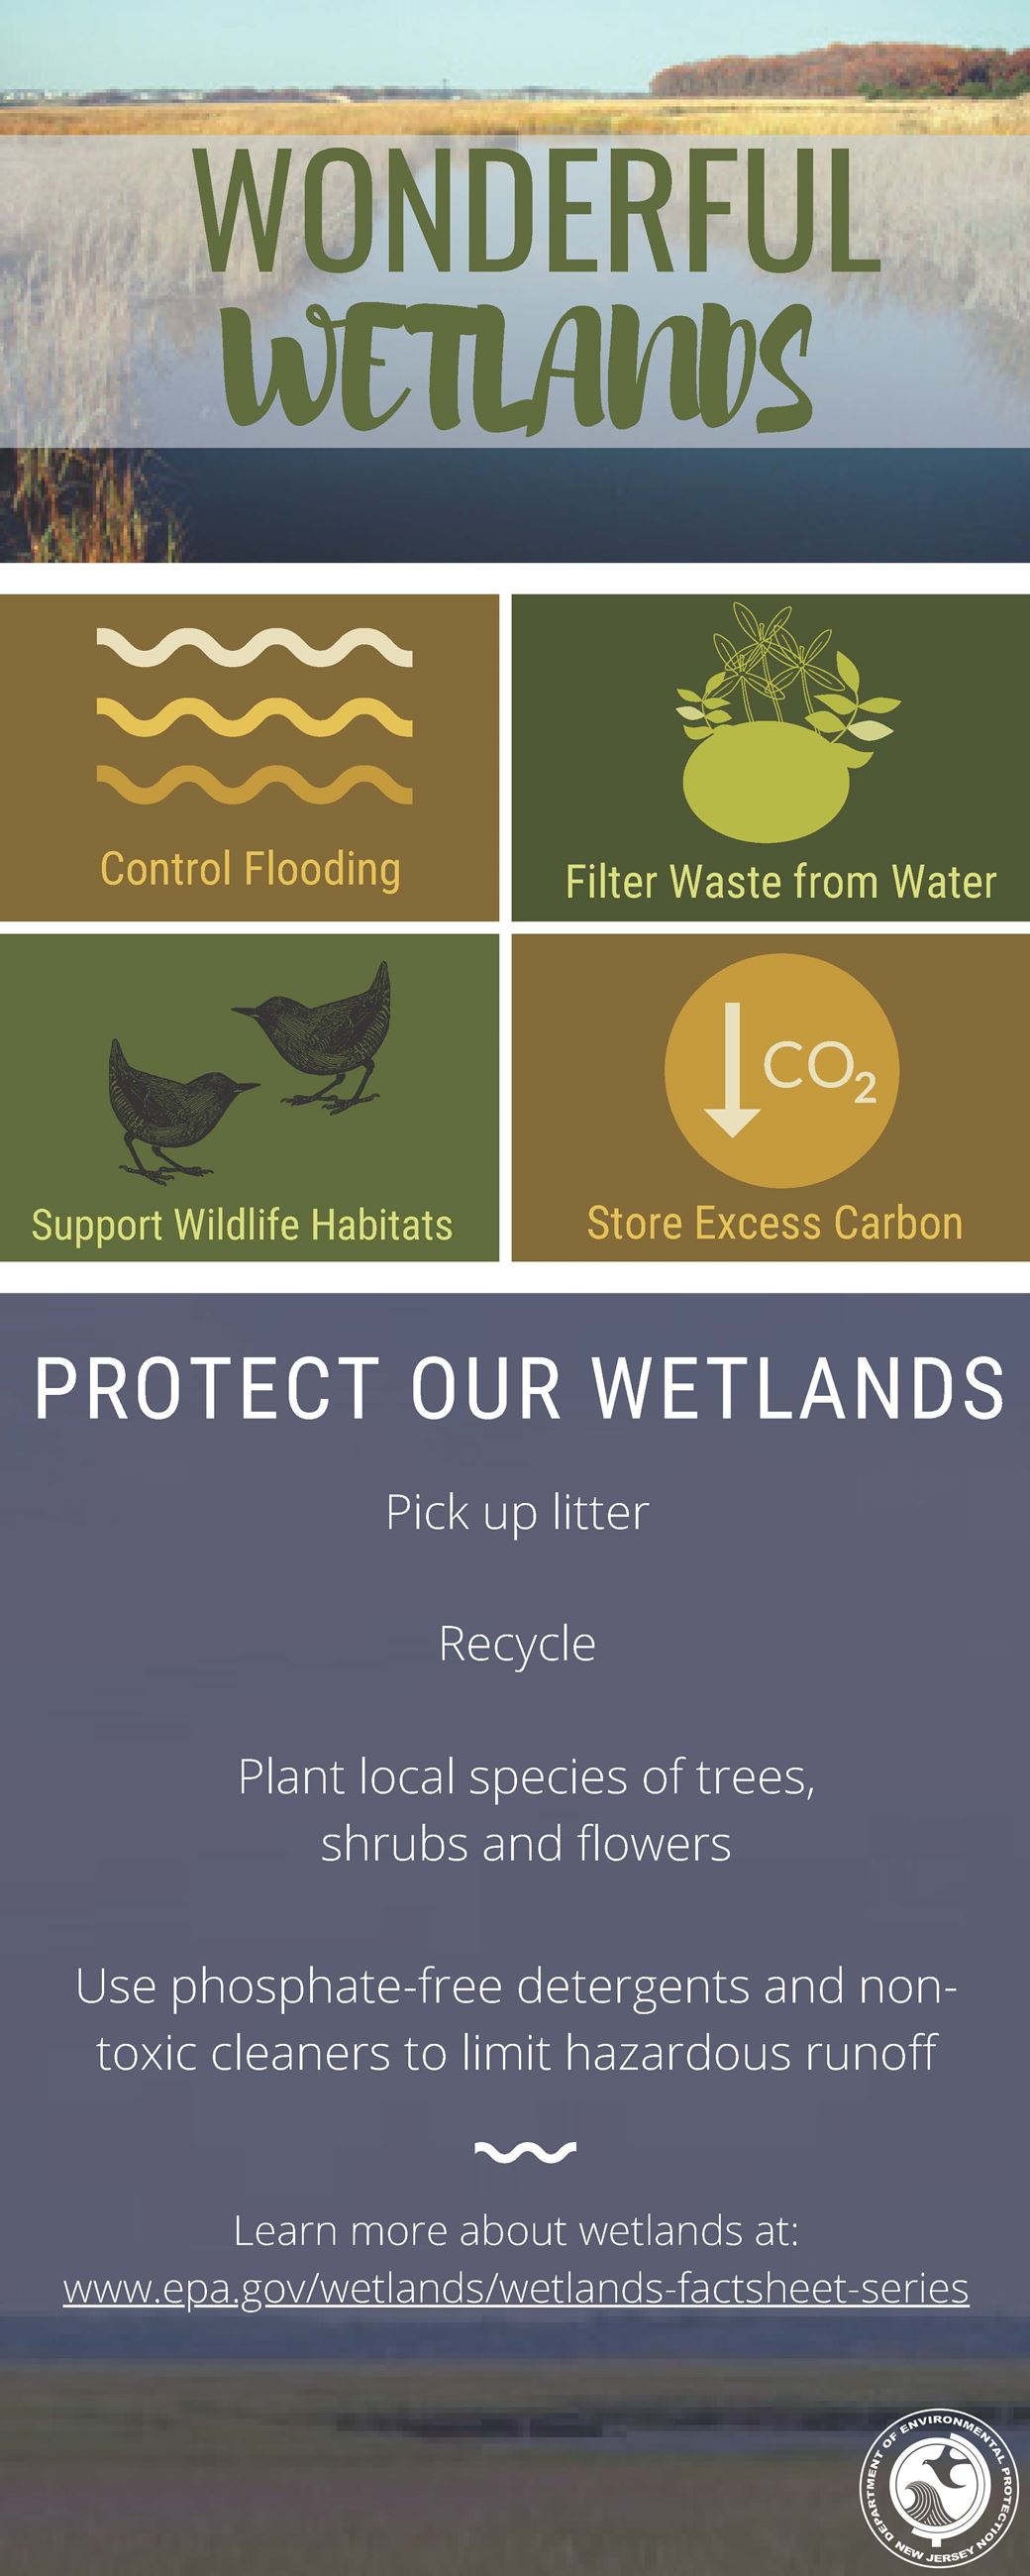 Wonderful Wetlands Infographic